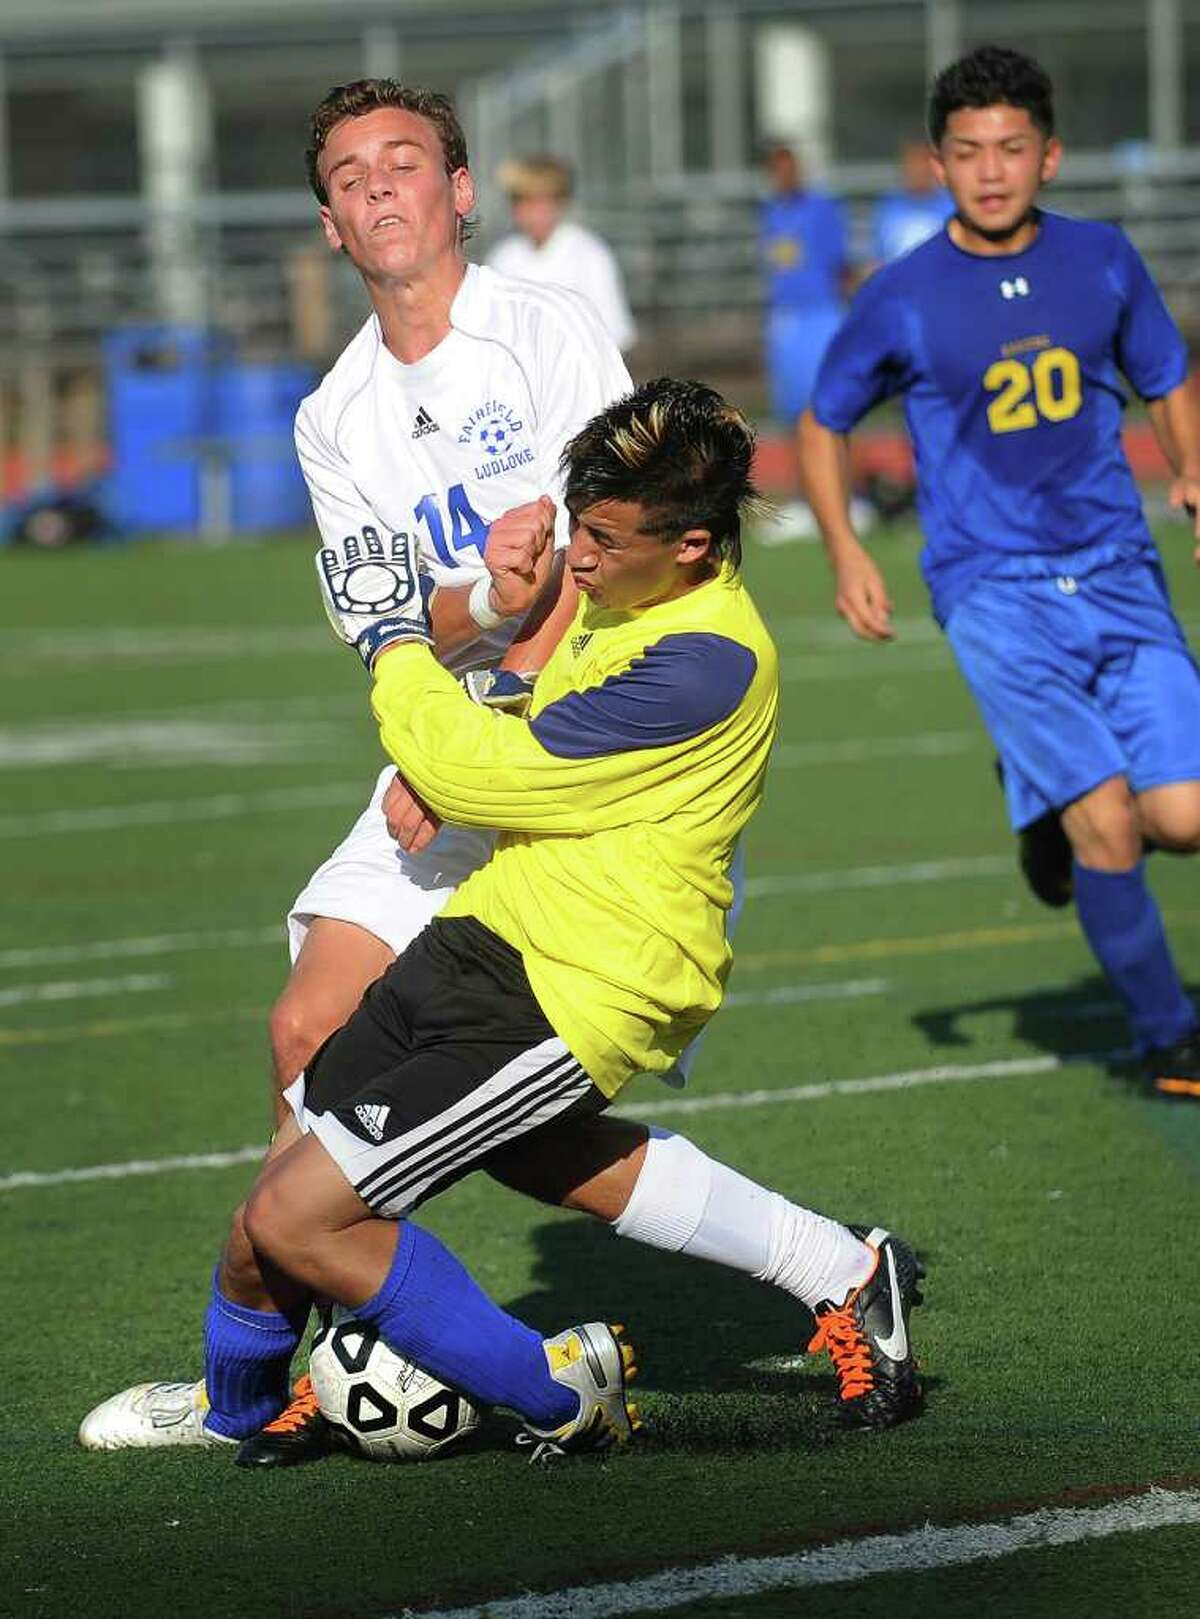 Ludlowe's Henry Kreiter collides with Harding keeper Adolfo Barragas during the first half of the Falcon's home victory on Monday, September 26, 2011.